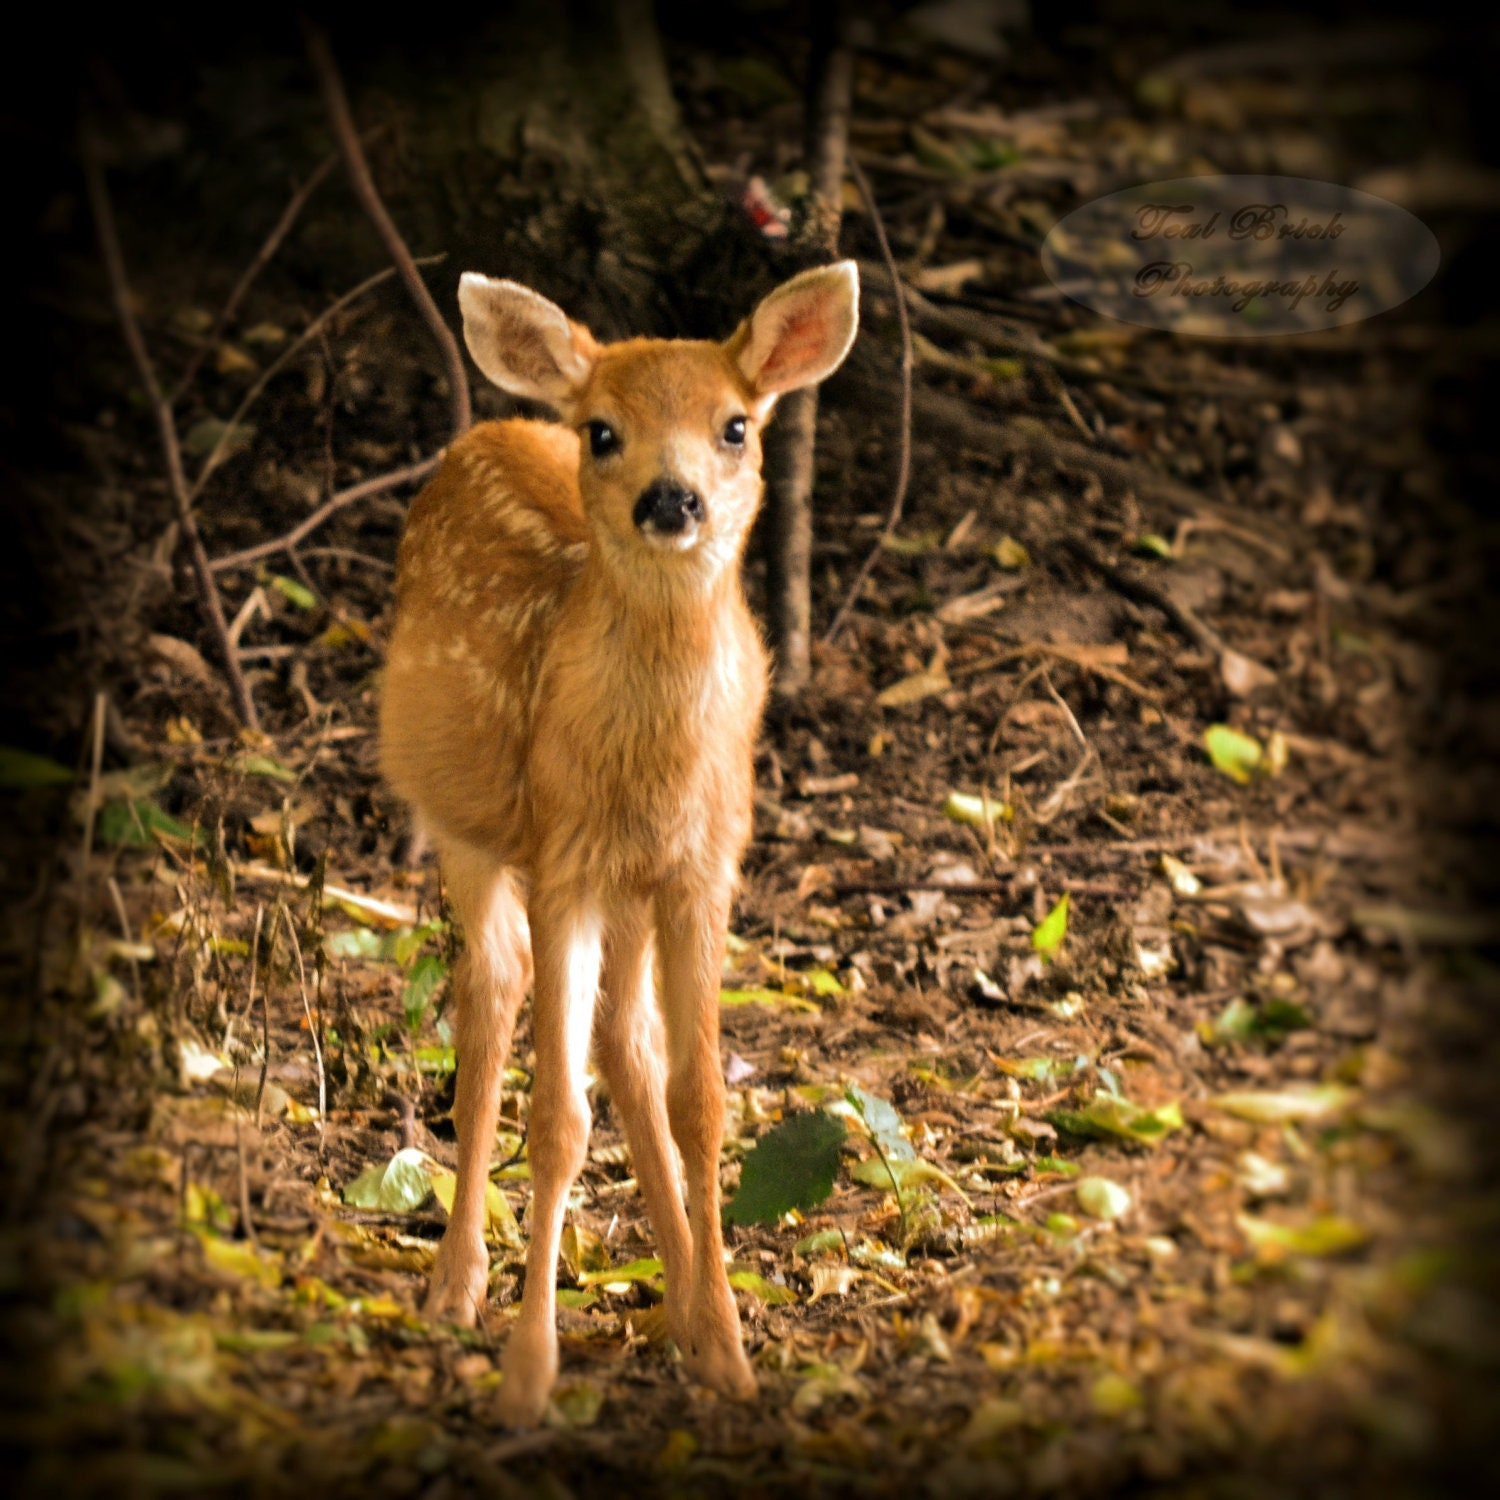 5X5 Baby Deer, Fawn, Autumn, All Ears Square Photograph with Black Backing frame